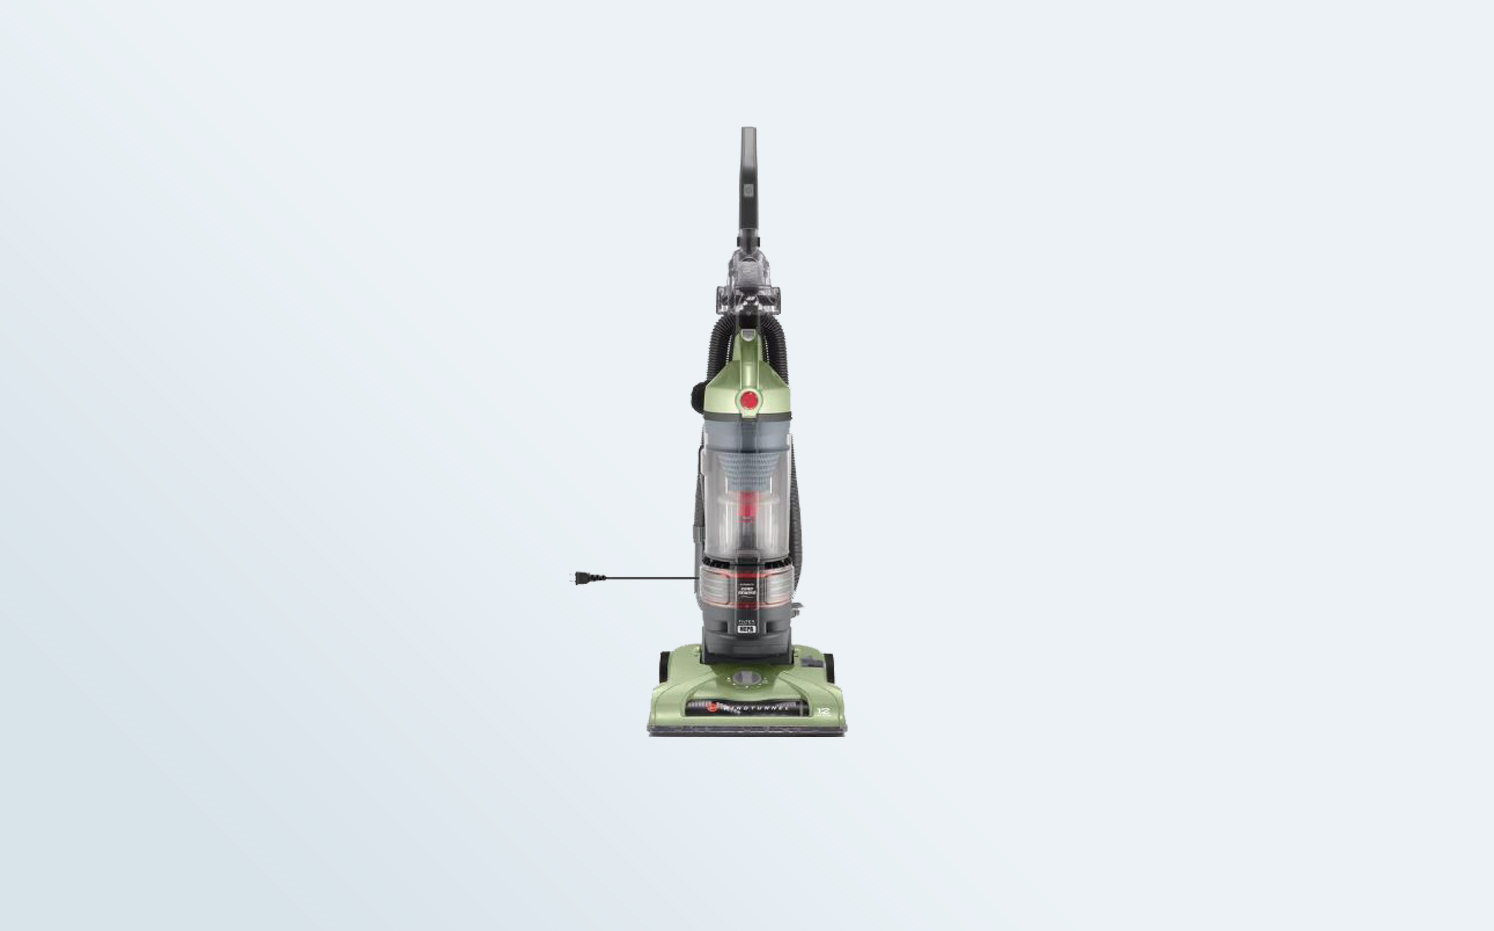 Best Upright Vacuums 2019 - Vacuum Cleaner Ratings, Test